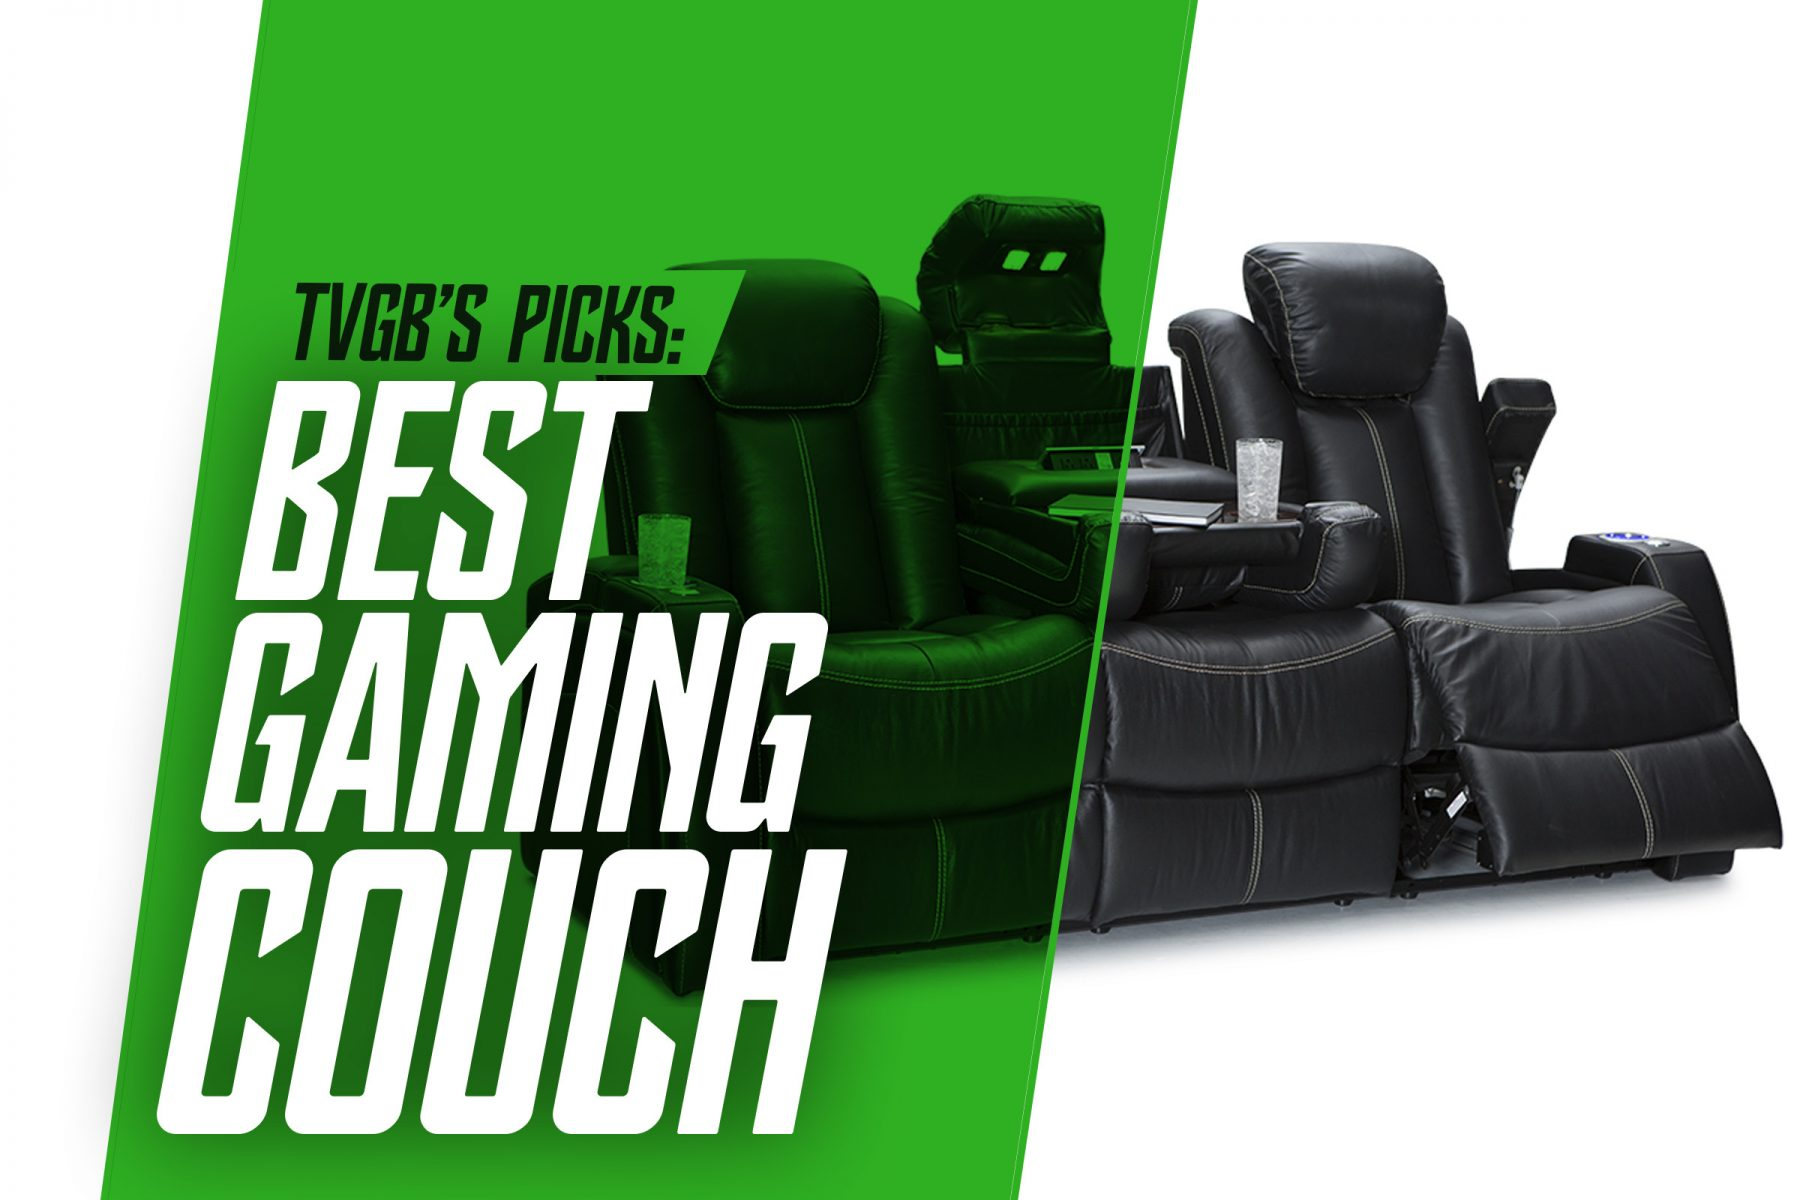 TVGB - gaming couch header image